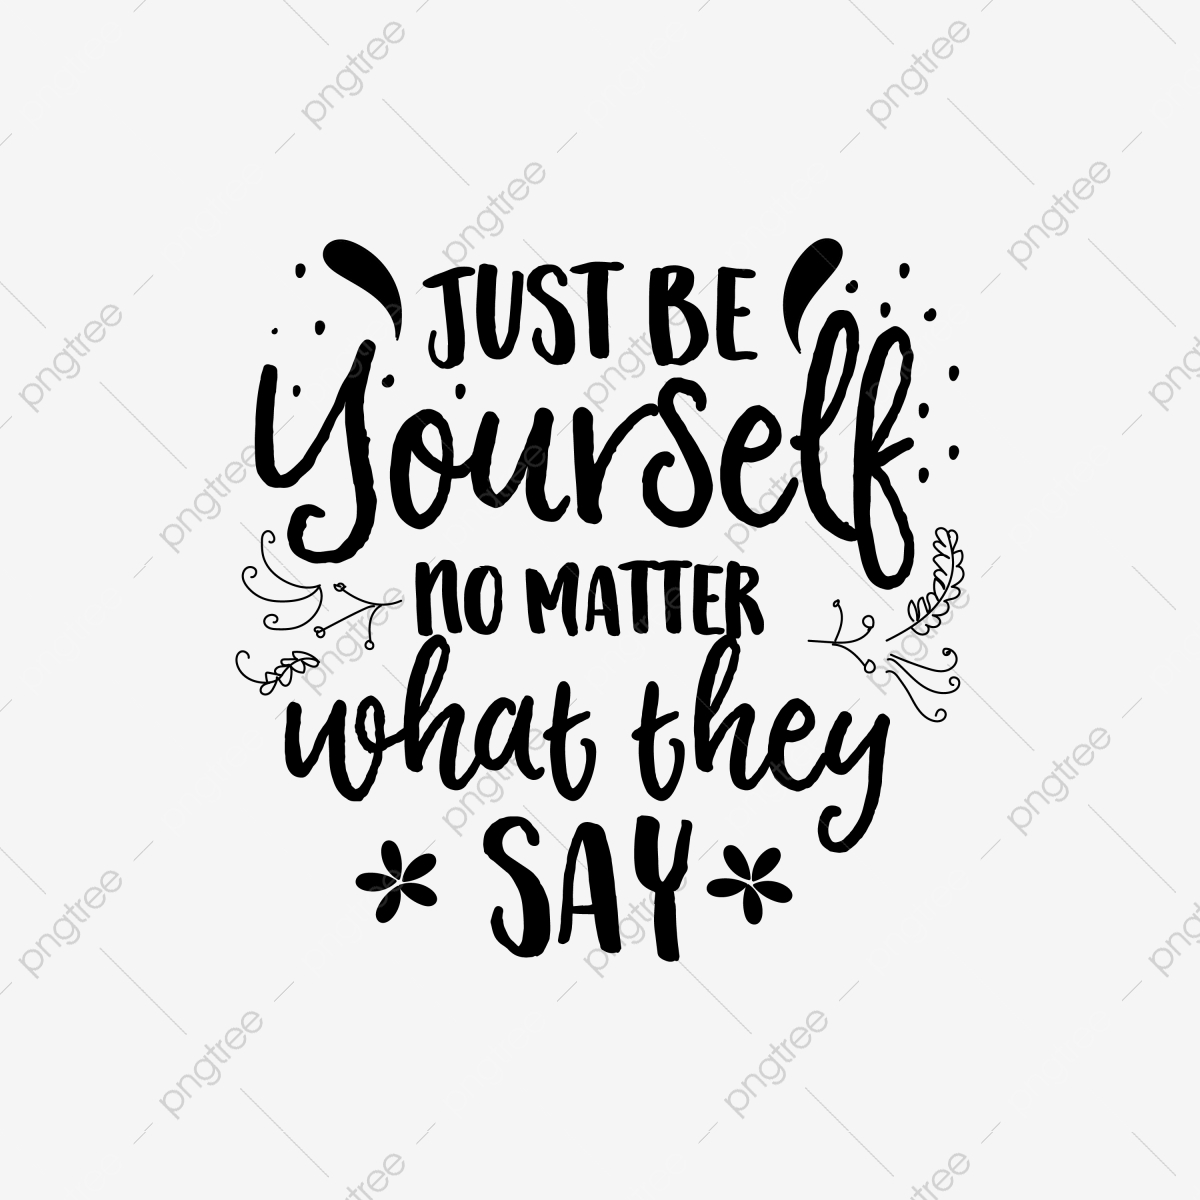 Inspirational Quotes T Shirt Design Svg Png Just Be Yourself Typography Quotes Design Png And Vector With Transparent Background For Free Download